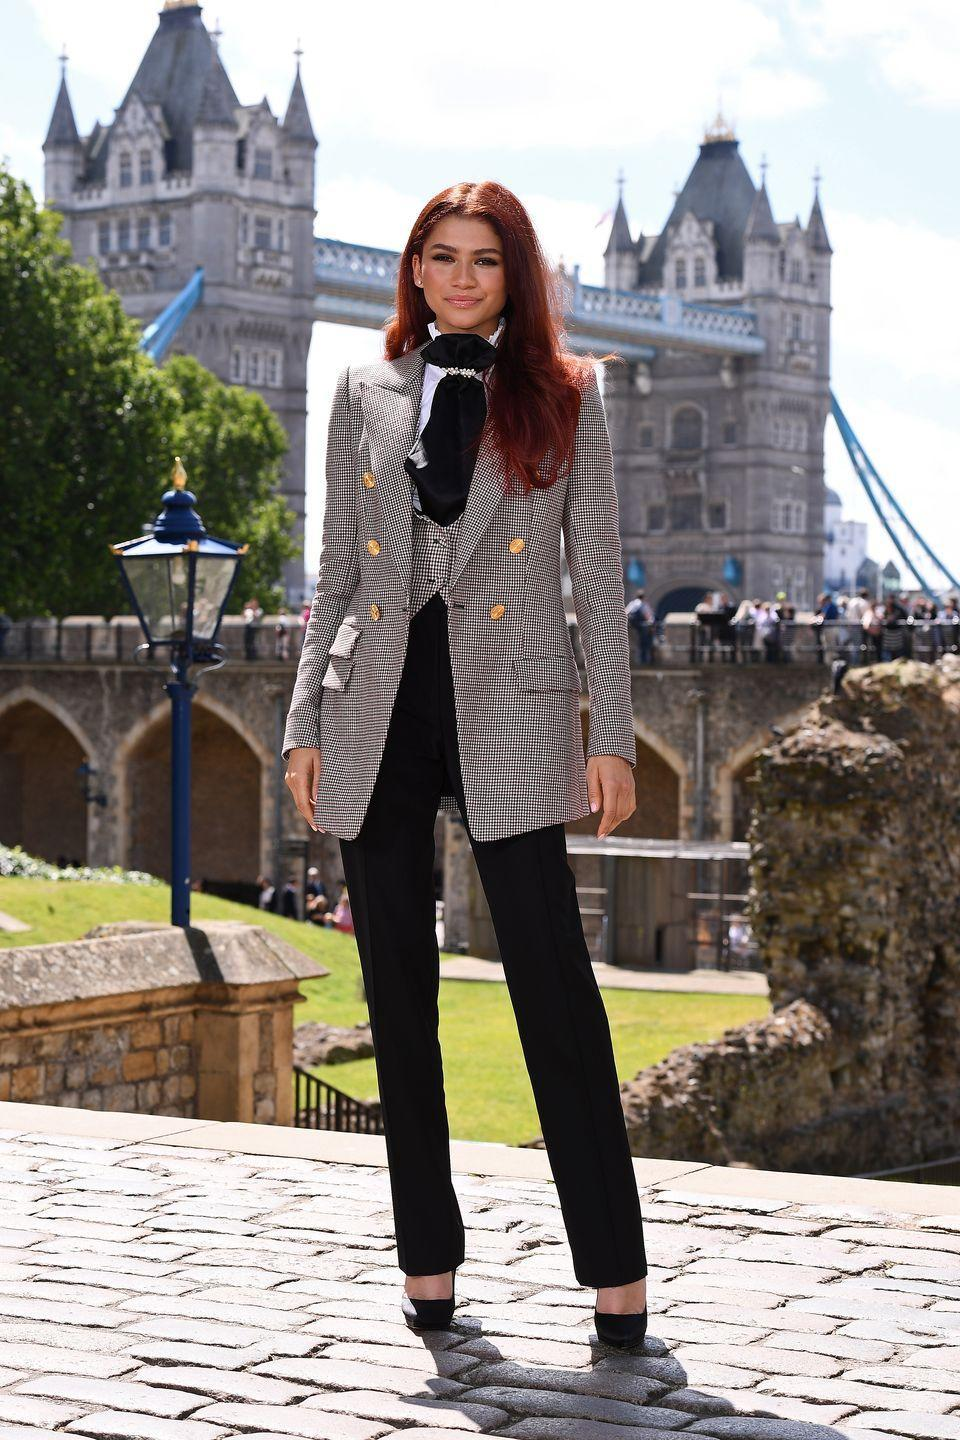 <p>It's pretty tough to steal the show from the literal Tower of London, but Z did just that at this photocall for <em>Spider-Man: Far From Home</em>. She debuted her then-new copper hair in this sharp Alexandre Vauthier suit. </p>